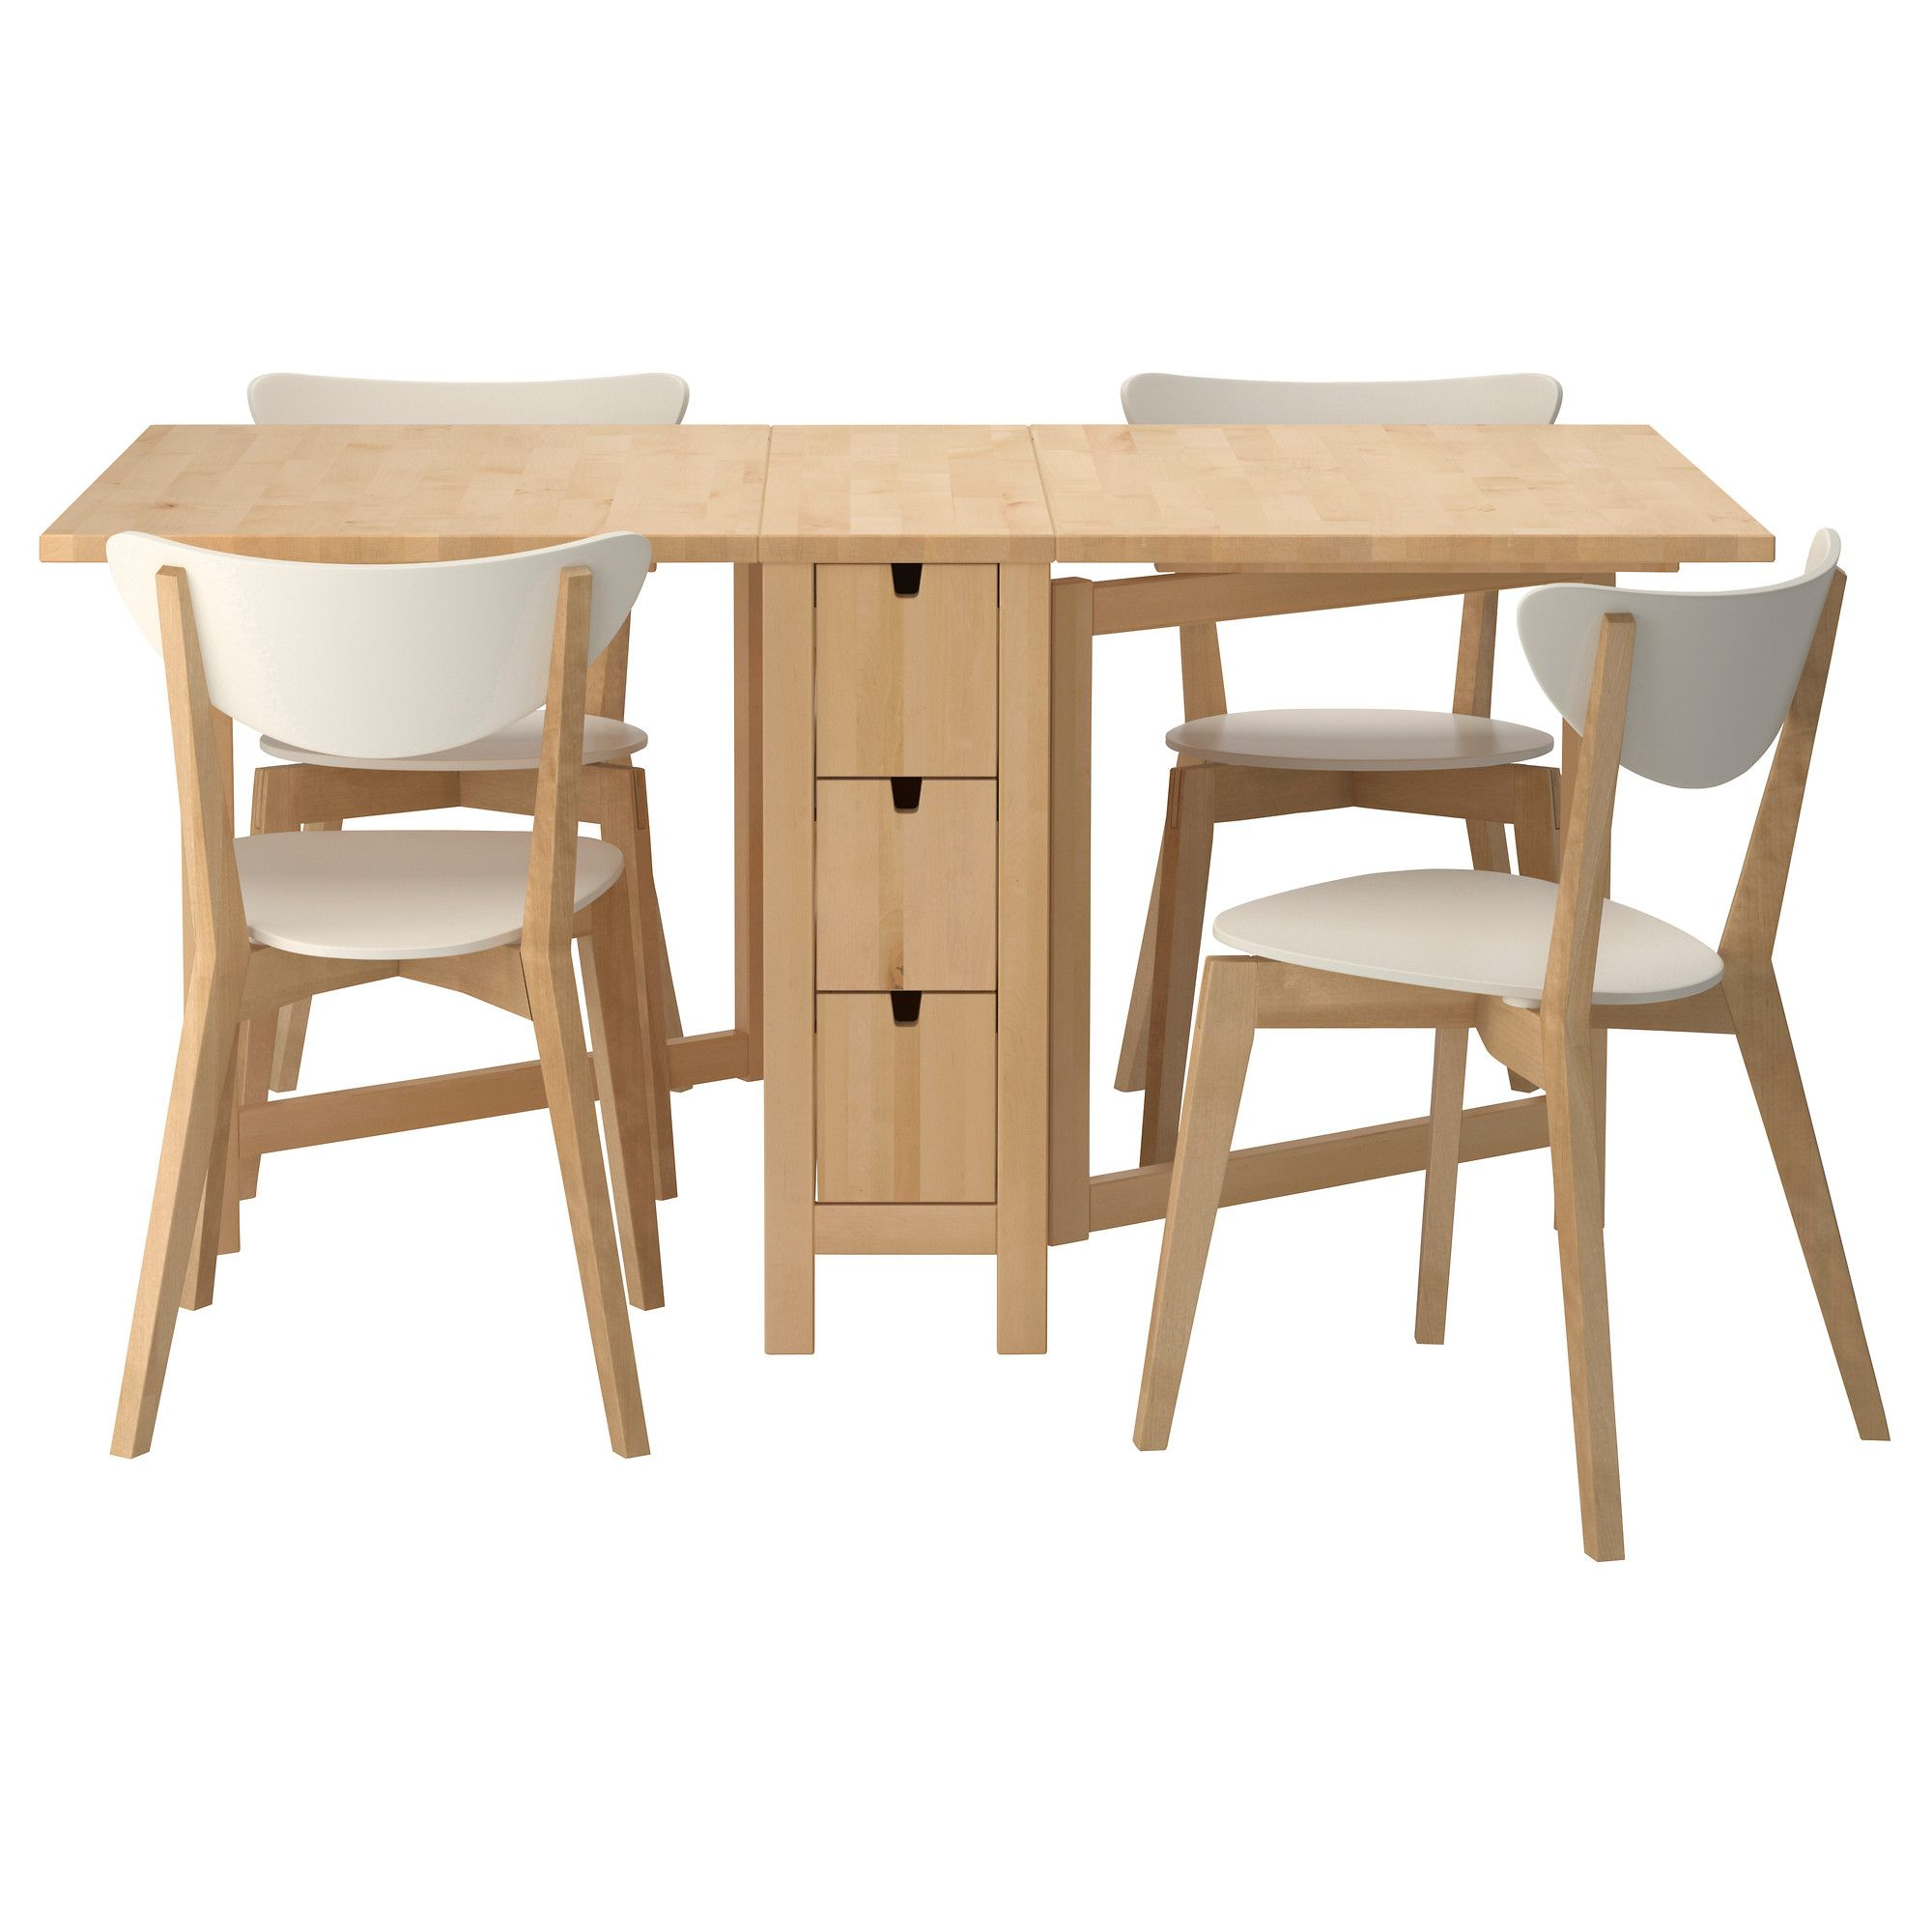 Apartment folding kitchen table are perfect for your limited space interior exterior ideas - Restaining kitchen table ...